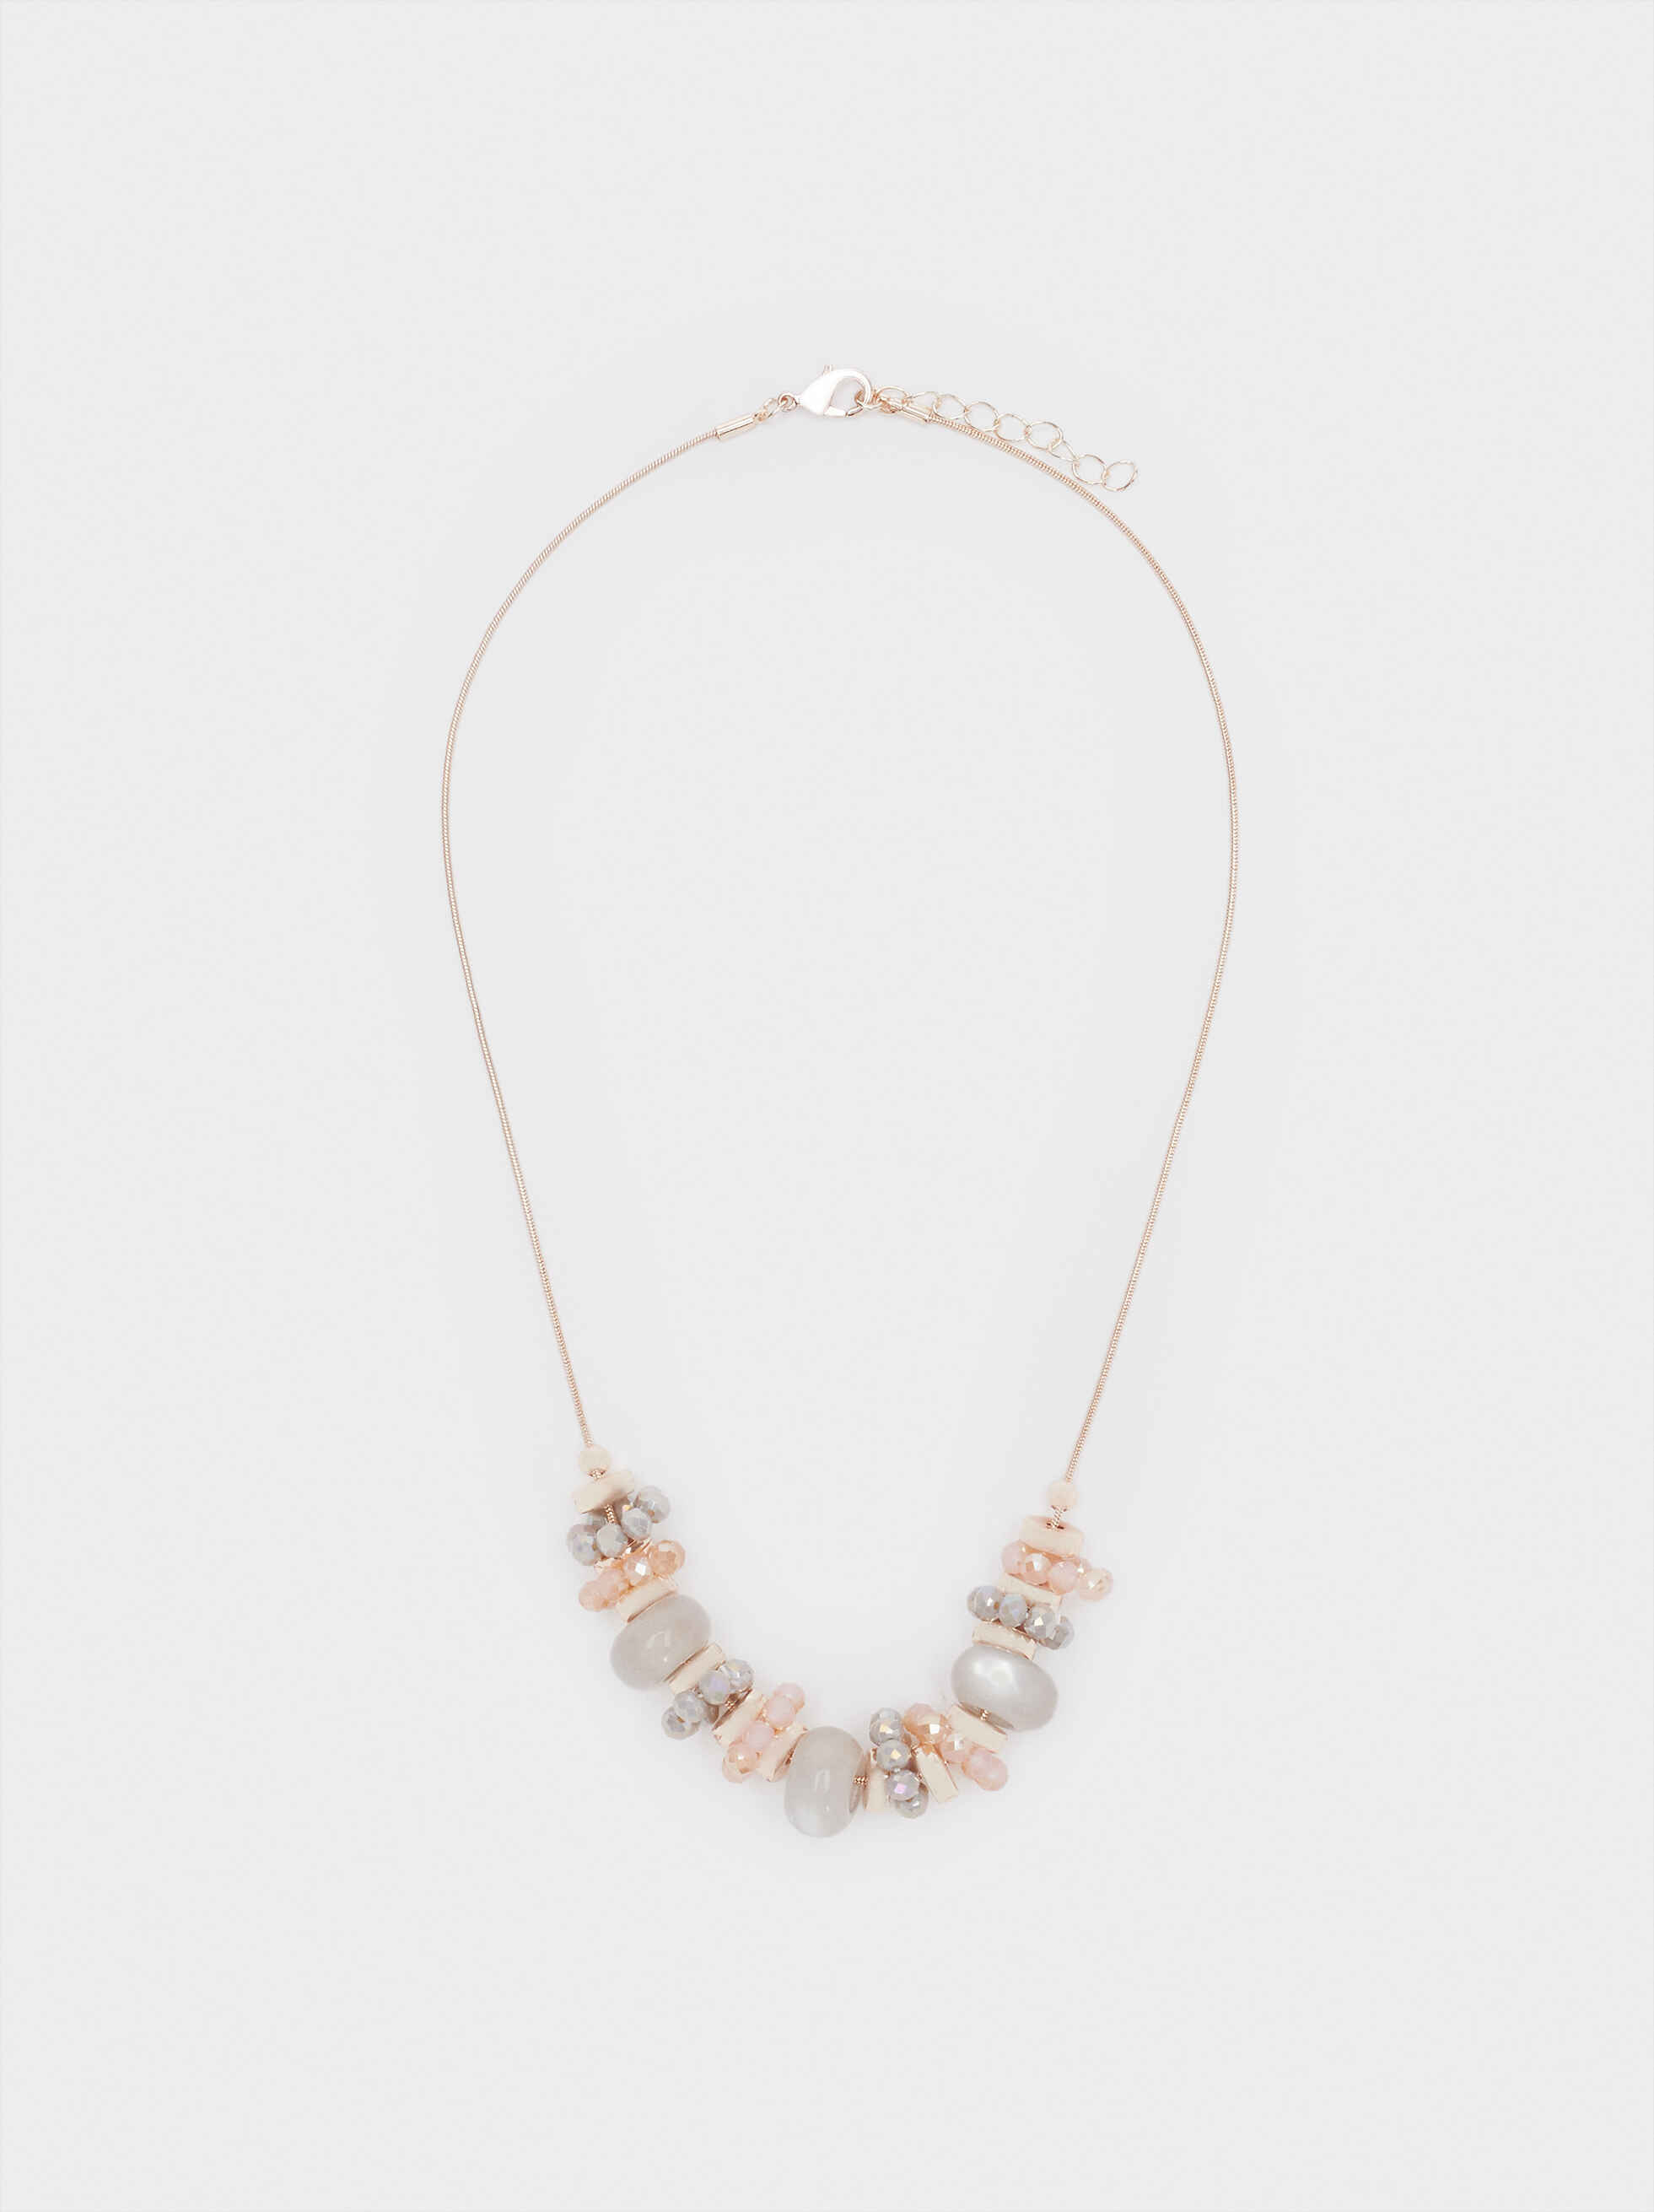 Short Rose Gold Necklace With Stones And Crystals, Orange, hi-res